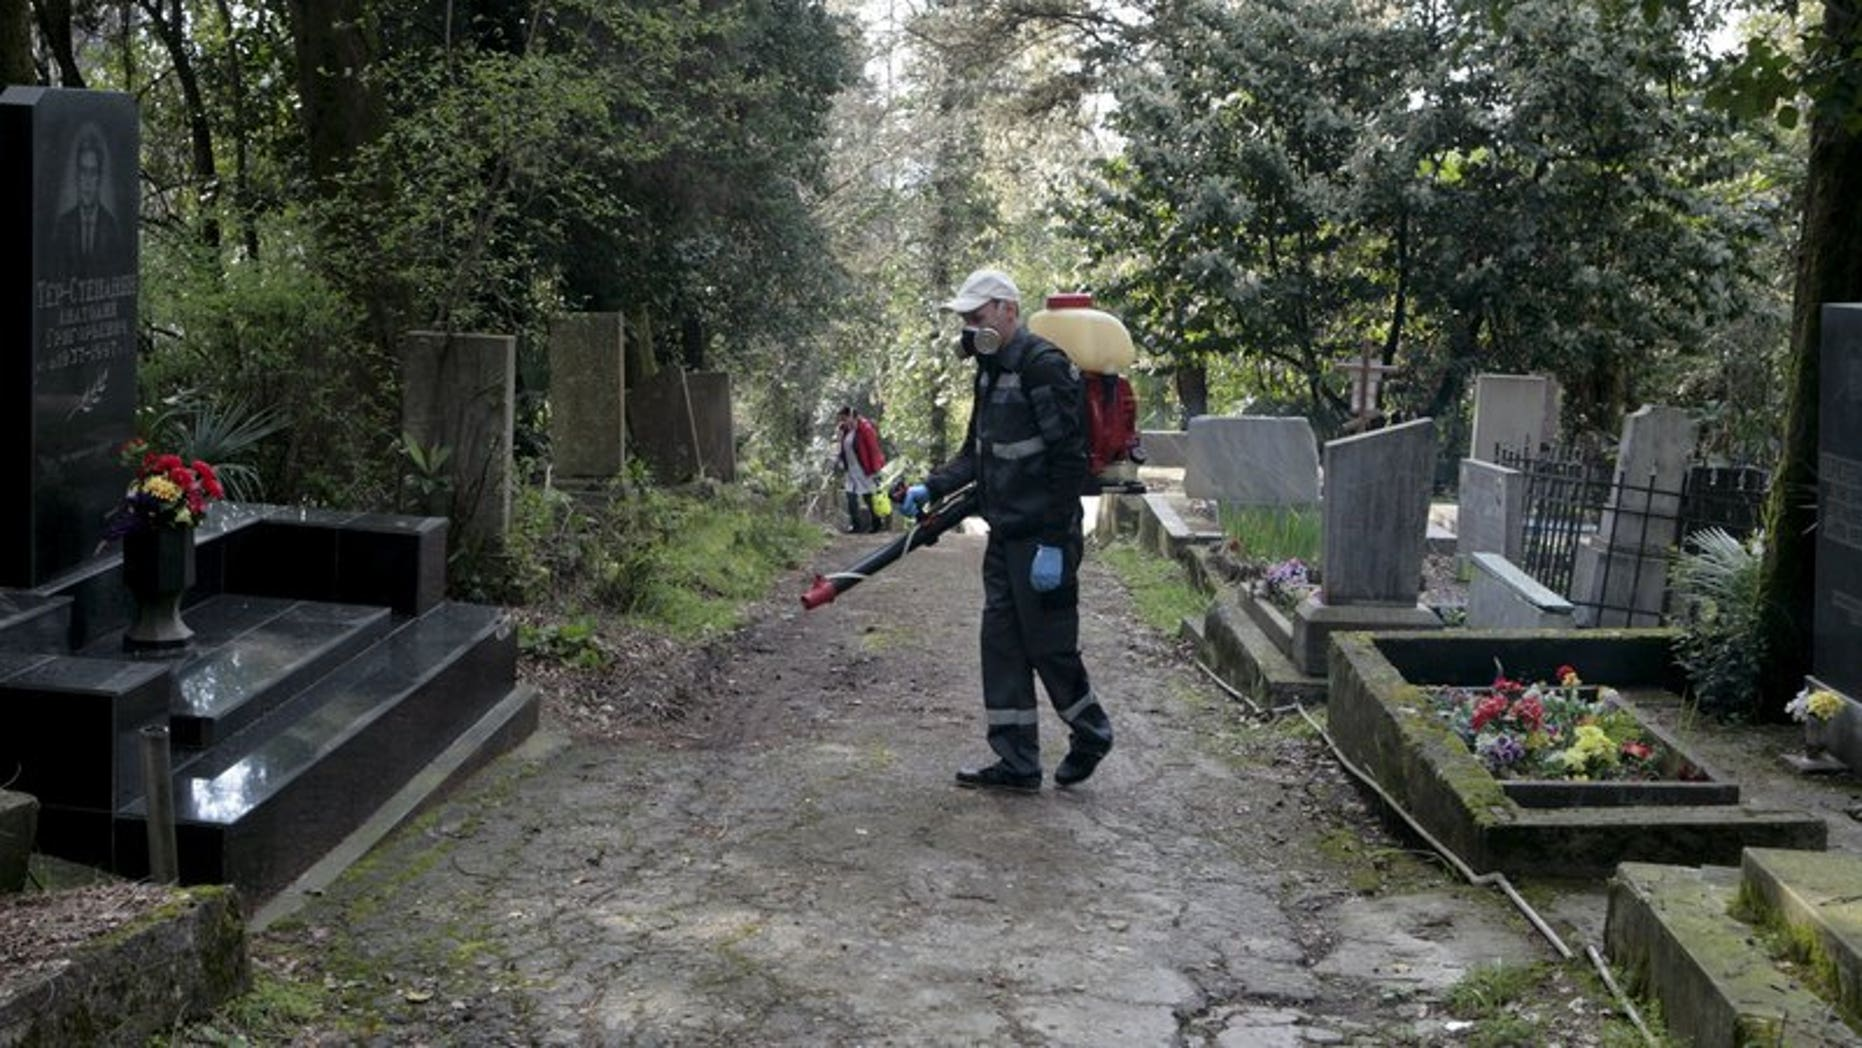 Workers fumigate against mosquito breeding as part of preventive measures against the Zika virus and other mosquito-borne diseases at the cemetery in Sochi